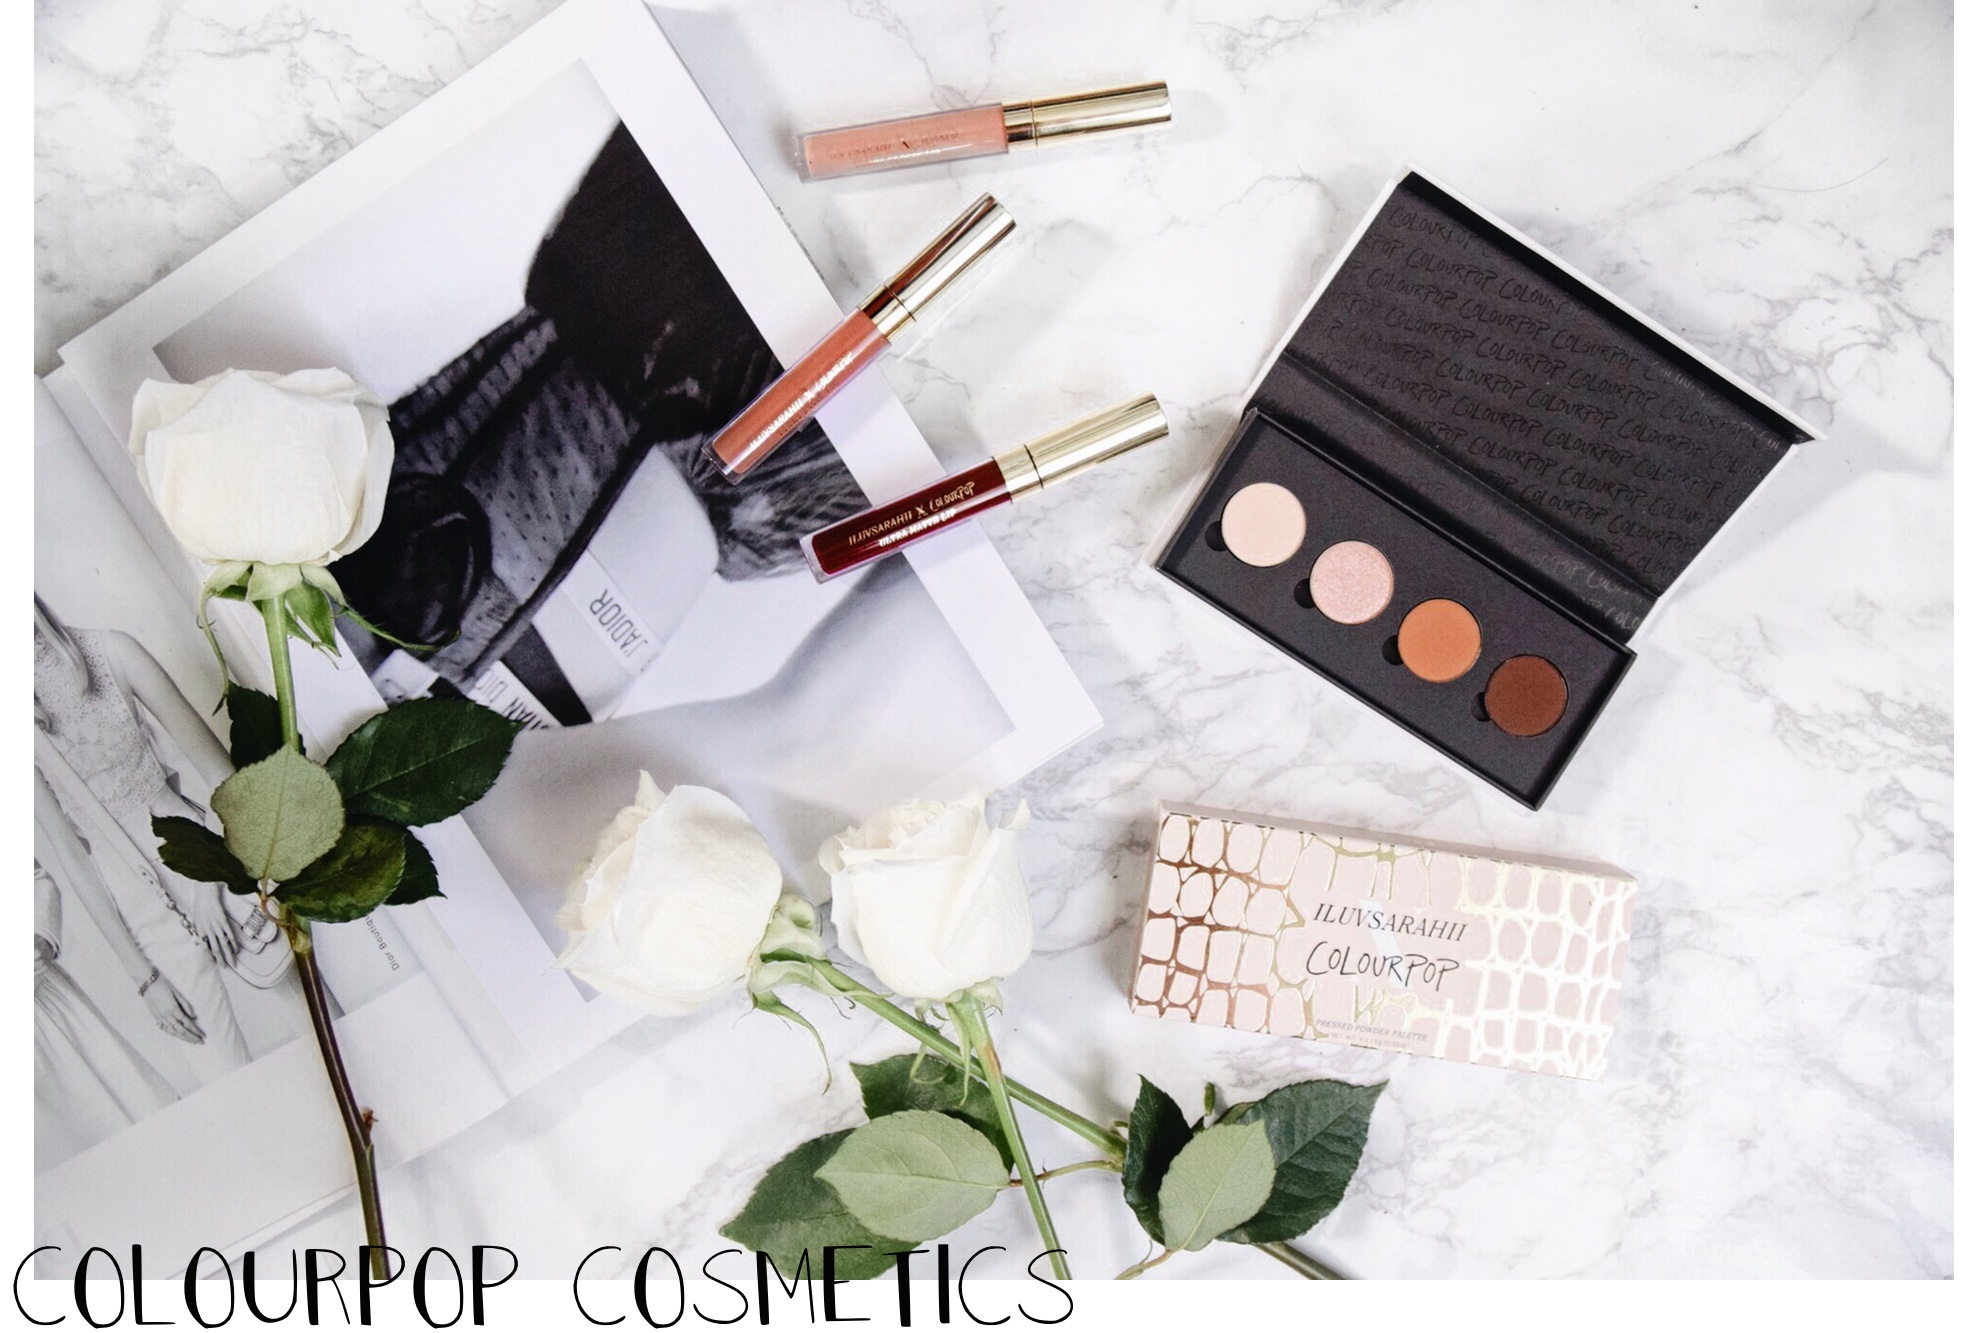 On My Vanity | New In // ColourPop Cosmetics x ILUVSARAHII // Los Angeles Fashion Blogger Daphne Blunt: To Style, With Love